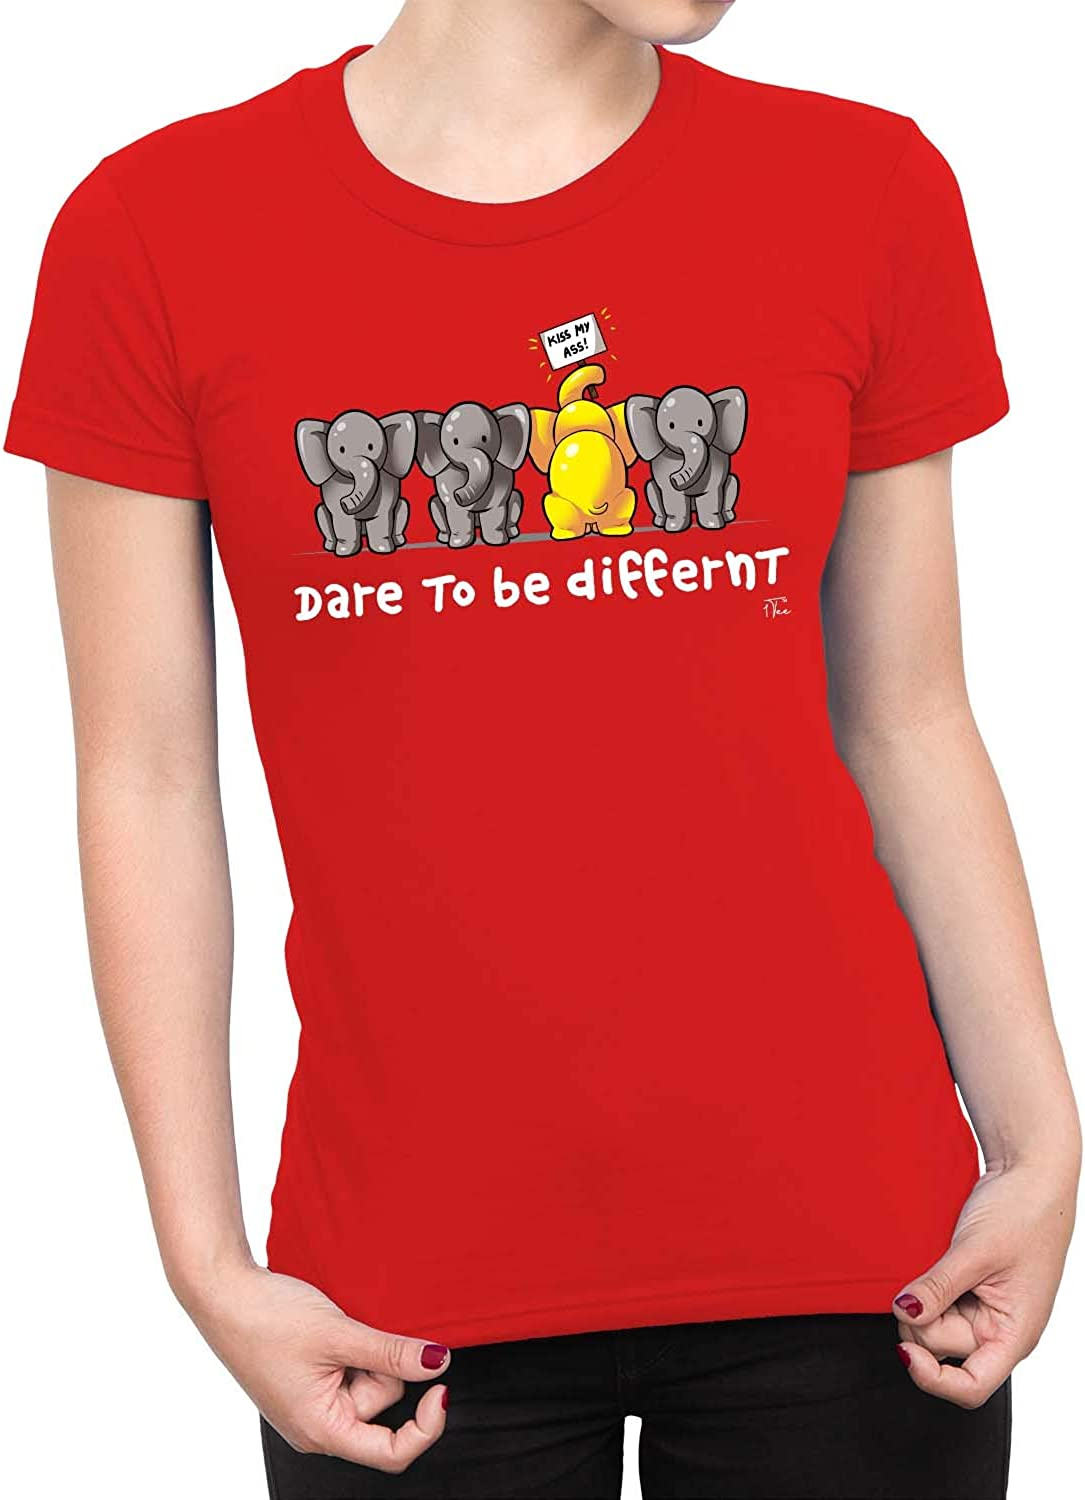 1Tee Womens Kiss My Ass Dare To Be Different Elephant T-Shirt